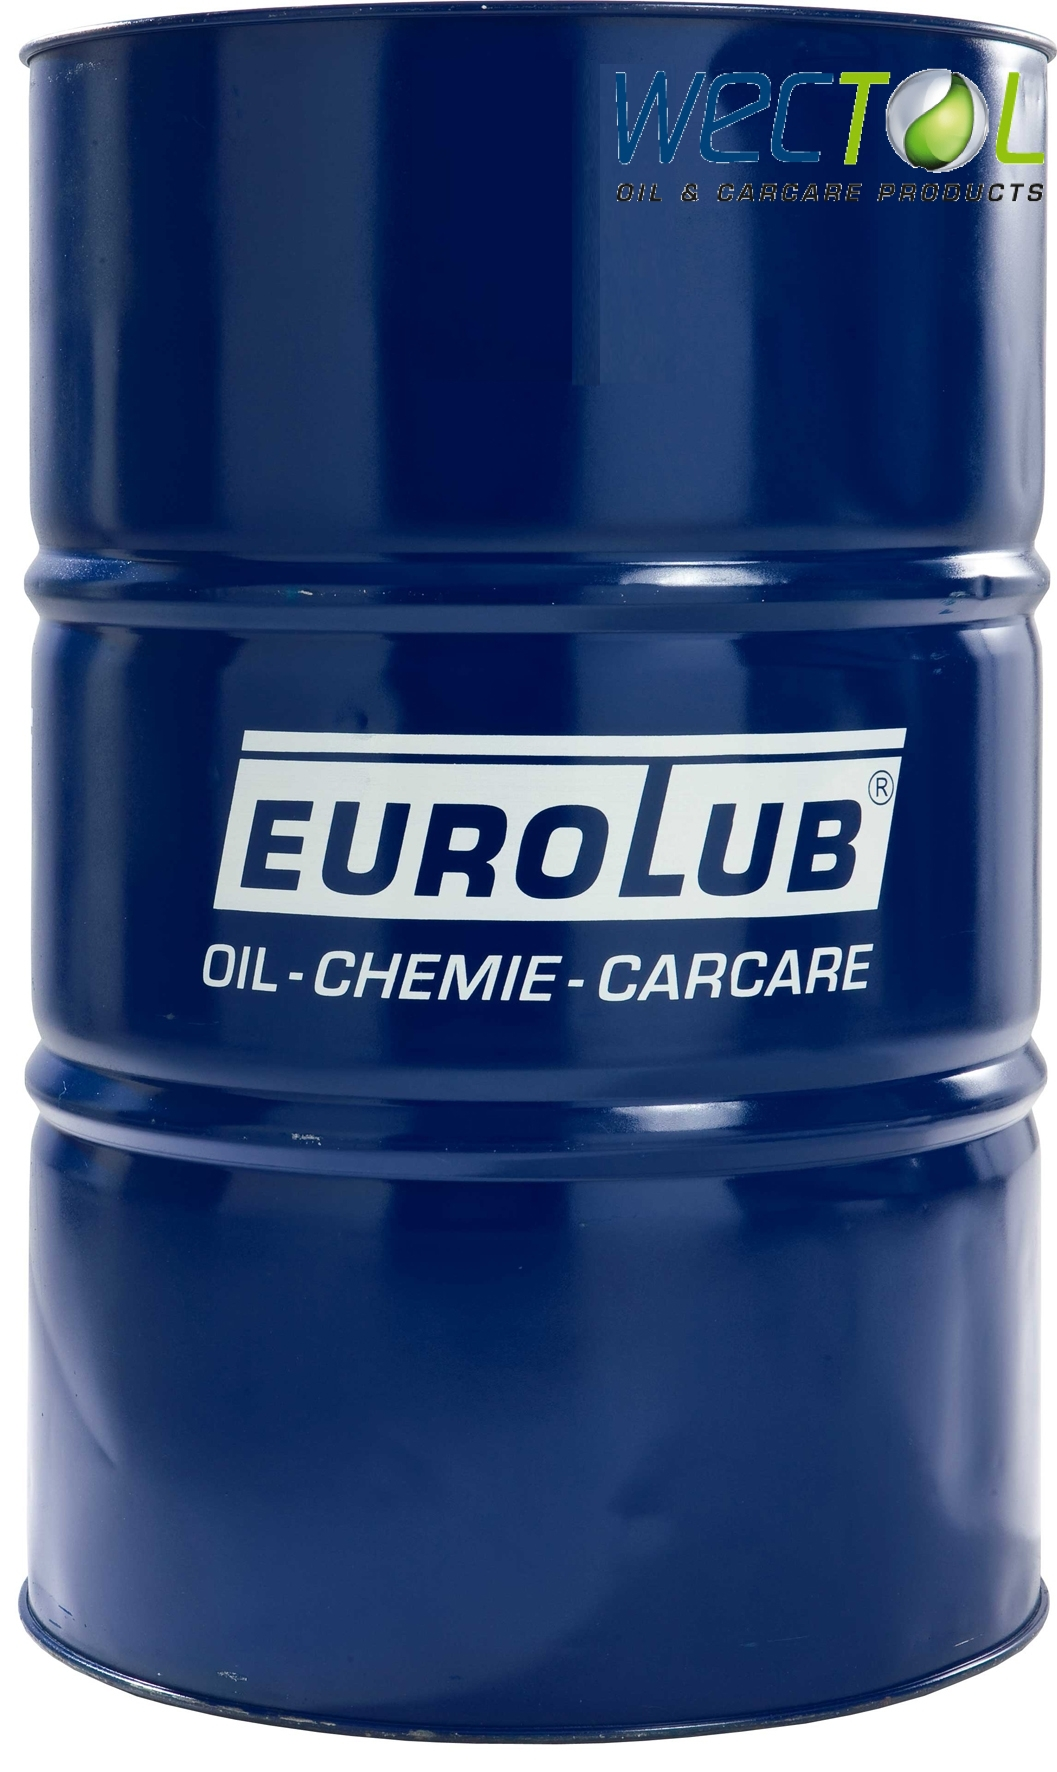 eurolub wiv eco 5w 30 motor l 5w30 vw bmw mb. Black Bedroom Furniture Sets. Home Design Ideas